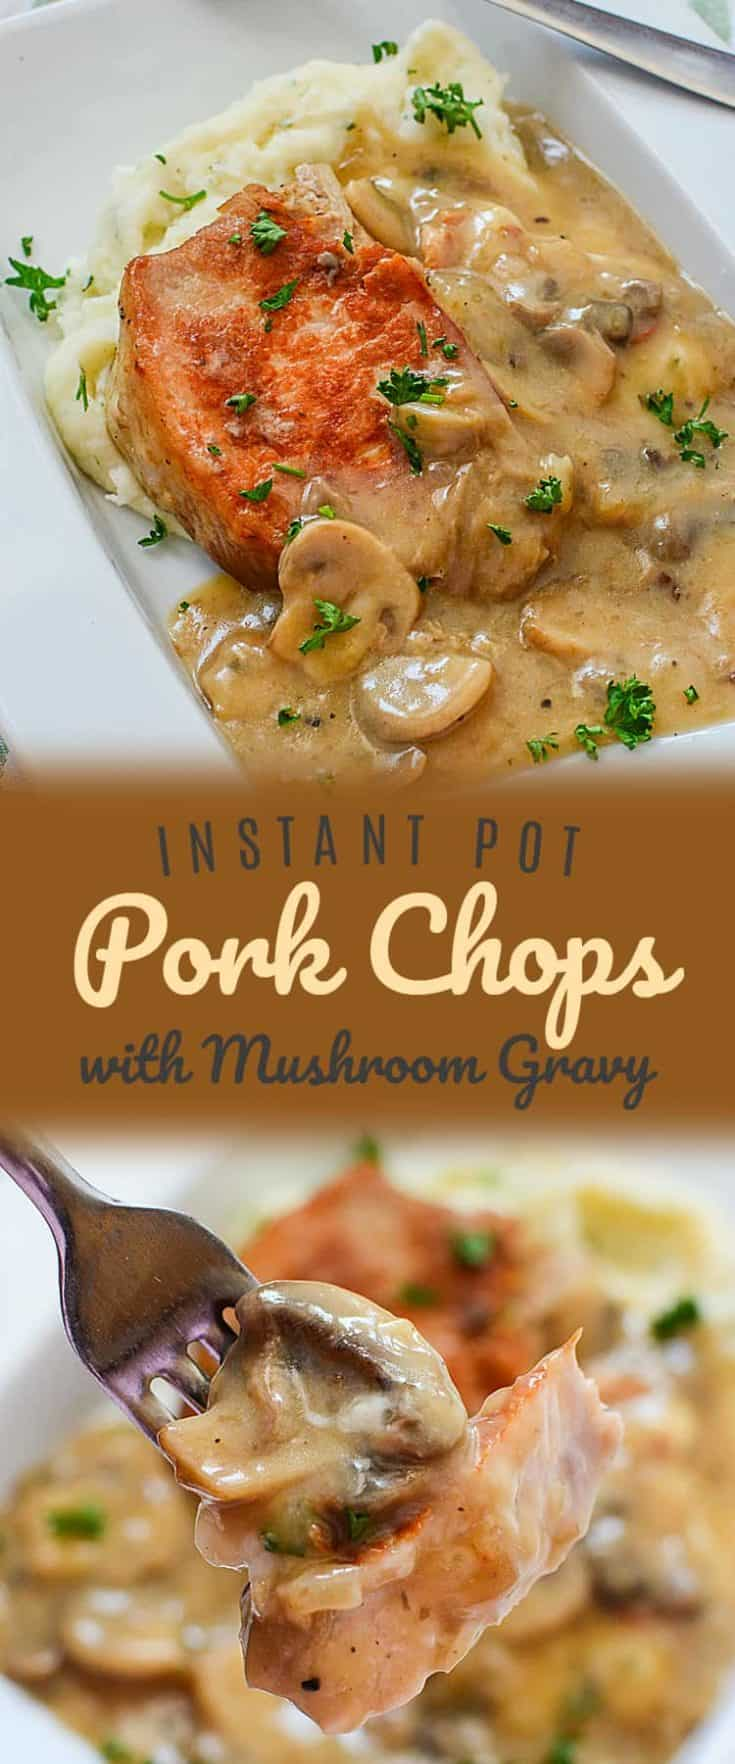 This Instant Pot Pork Chops recipe just may become your favourite pork chop recipe altogether. With a seared outside and a tender middle, the meat is smothered in a delicious mushroom gravy. Ideal for busy nights when we're short on time but still want a homemade dinner that's quick and easy. #instantpot #instantpotrecipe #instantpotporkchops